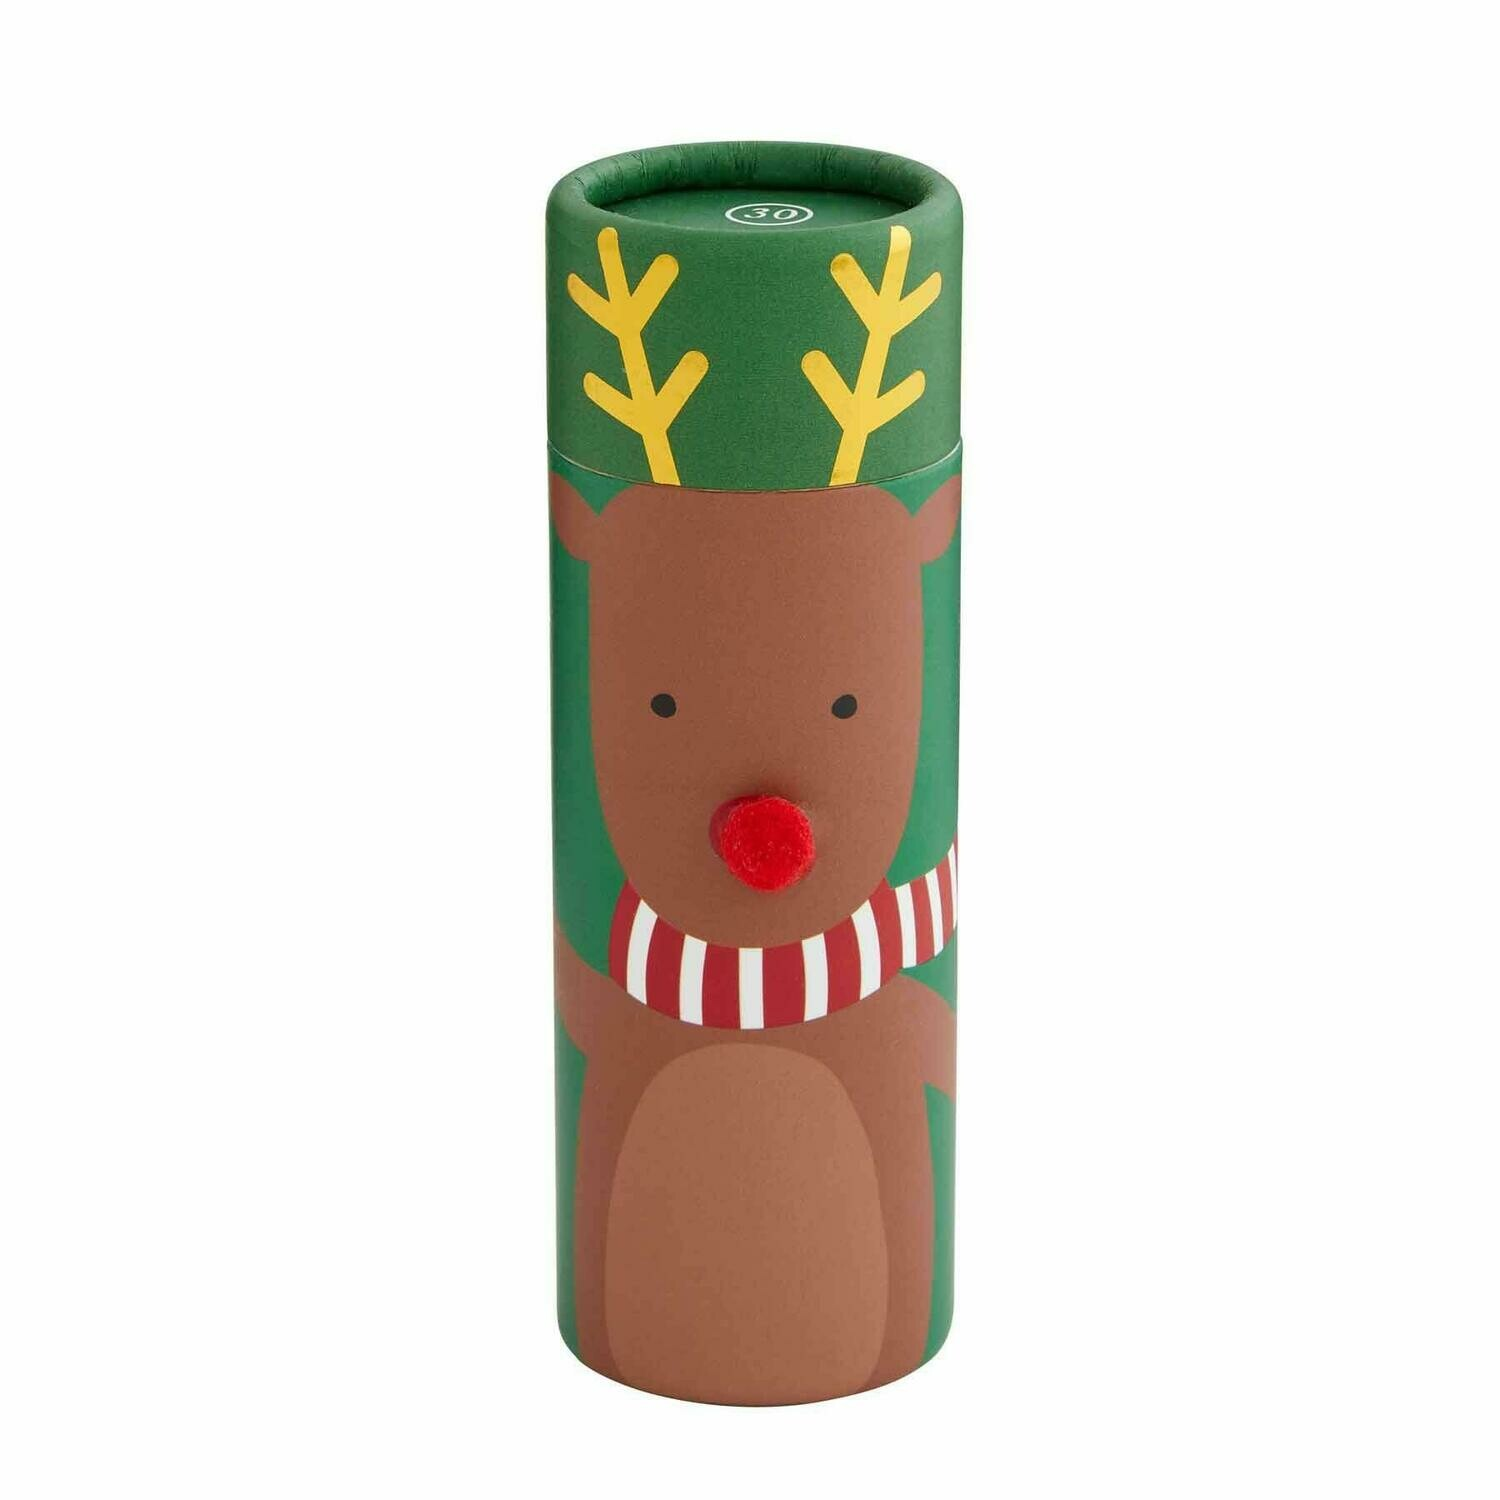 Reindeer Matches in a Tube